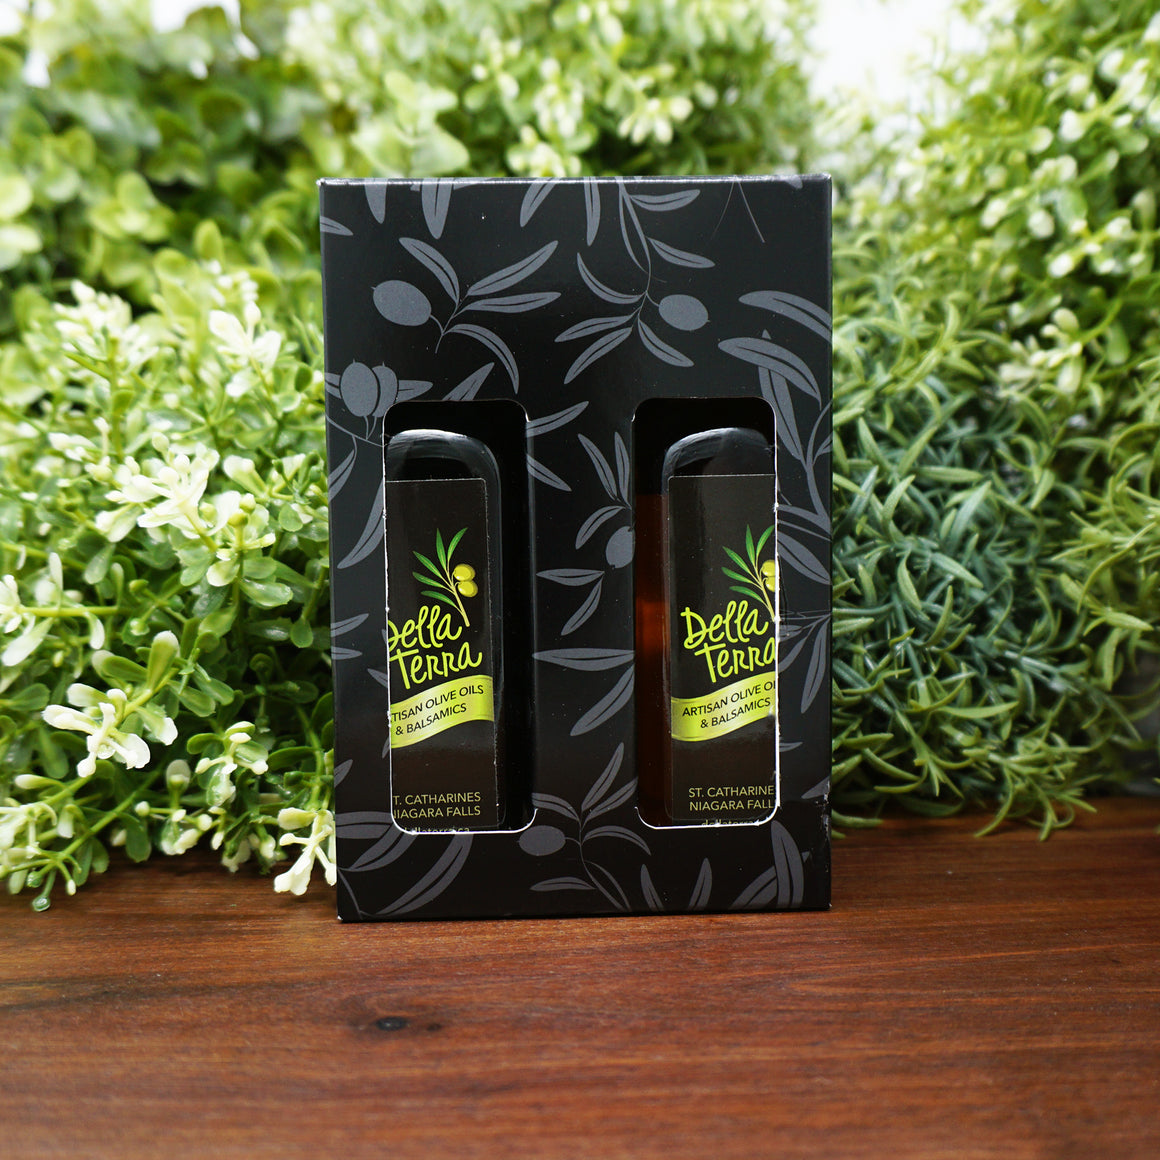 Della Terra a la Carte 2 Bottle Mini Oil and Balsamic Gift Set